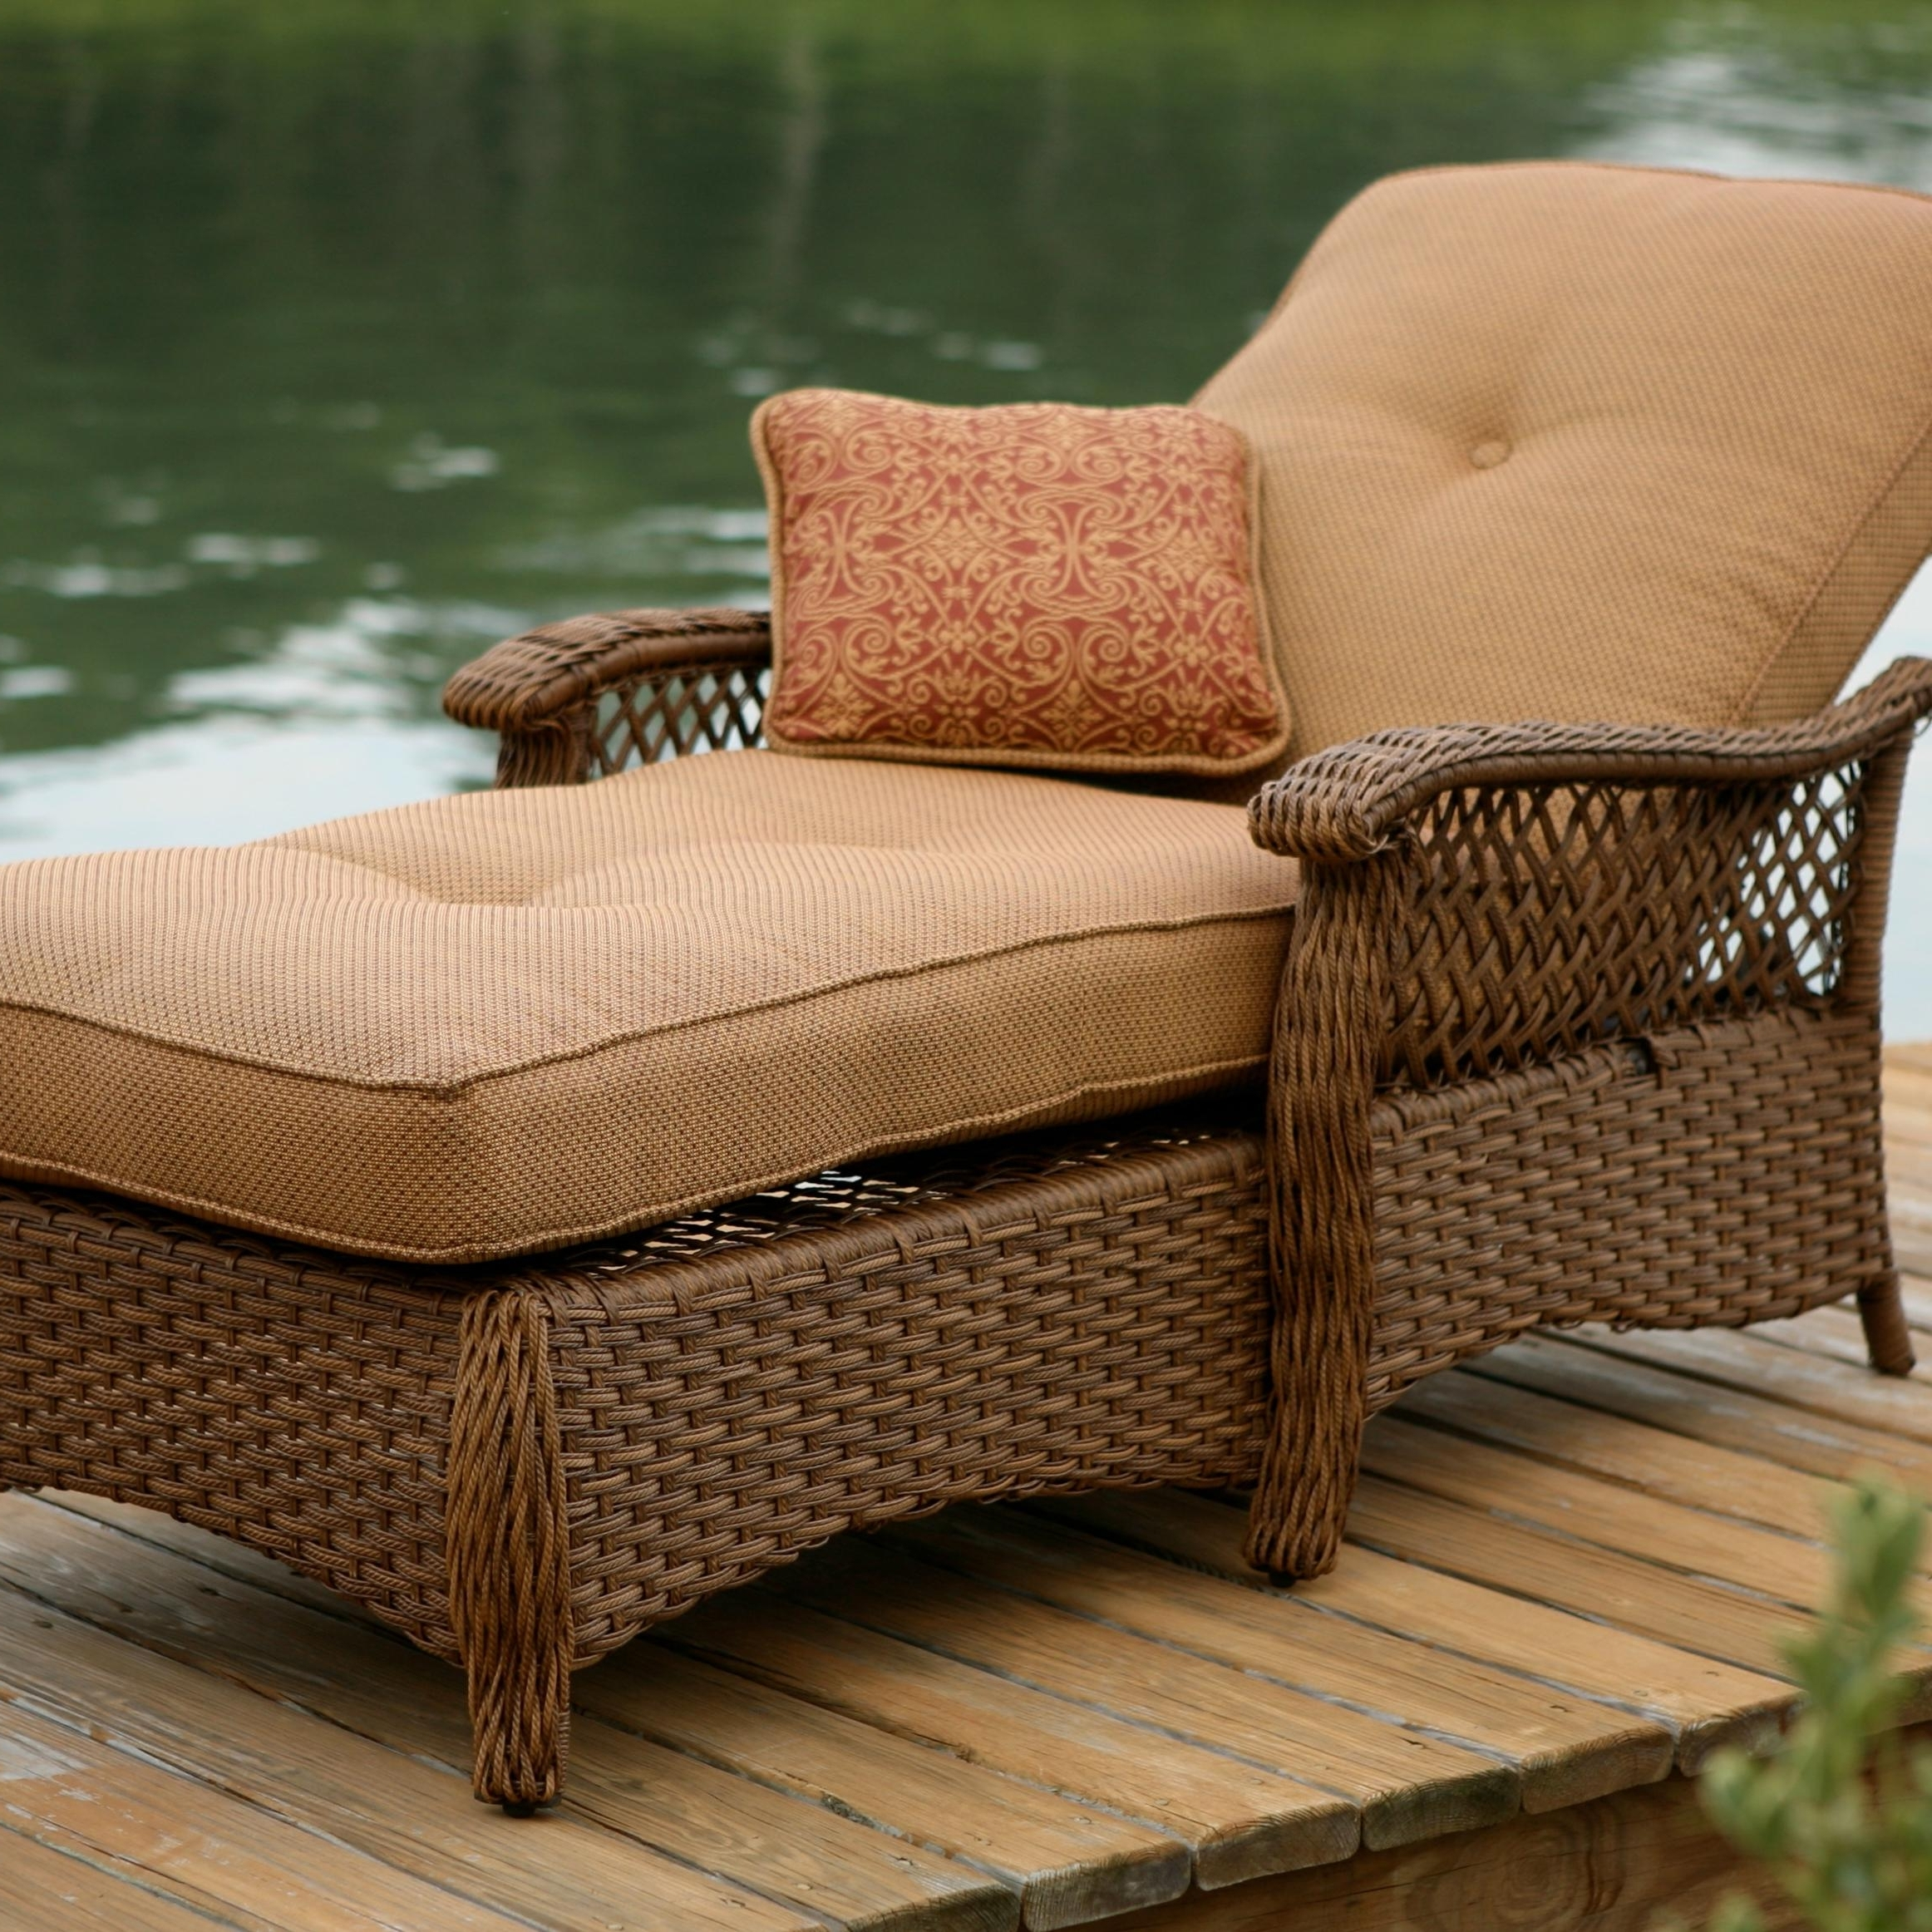 Well Known Wicker Chaise Lounges Regarding Wicker Chaise Lounge Chair • Lounge Chairs Ideas (View 12 of 15)